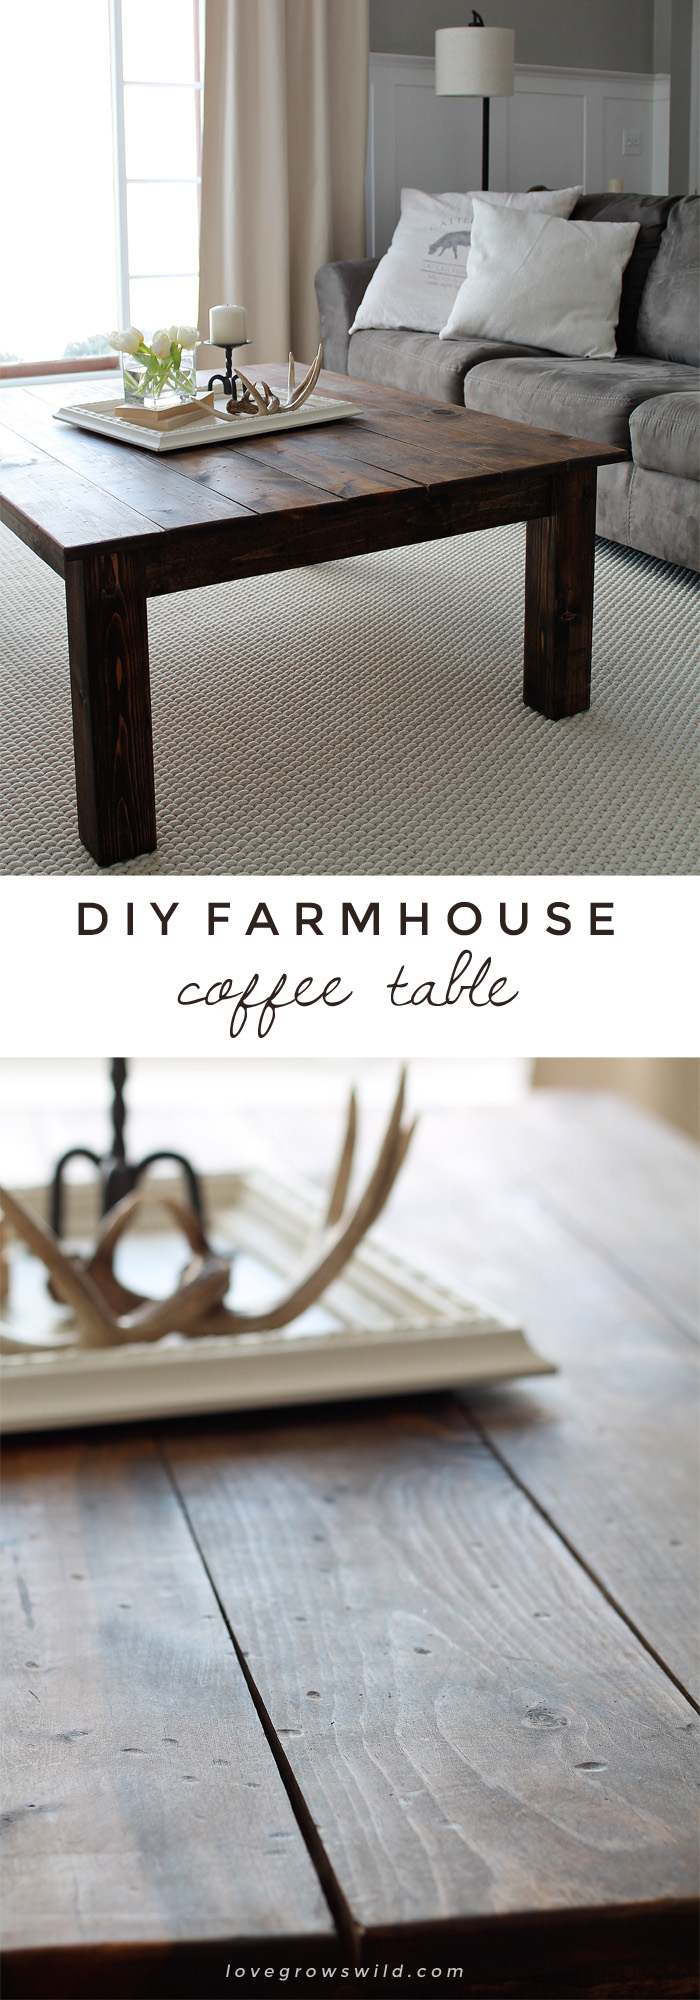 dresser legs probably fantastic nice diy rustic end table plans farmhouse coffee love grows wild pin learn how build this wood lovegrowswild click woodworking hand tools patio